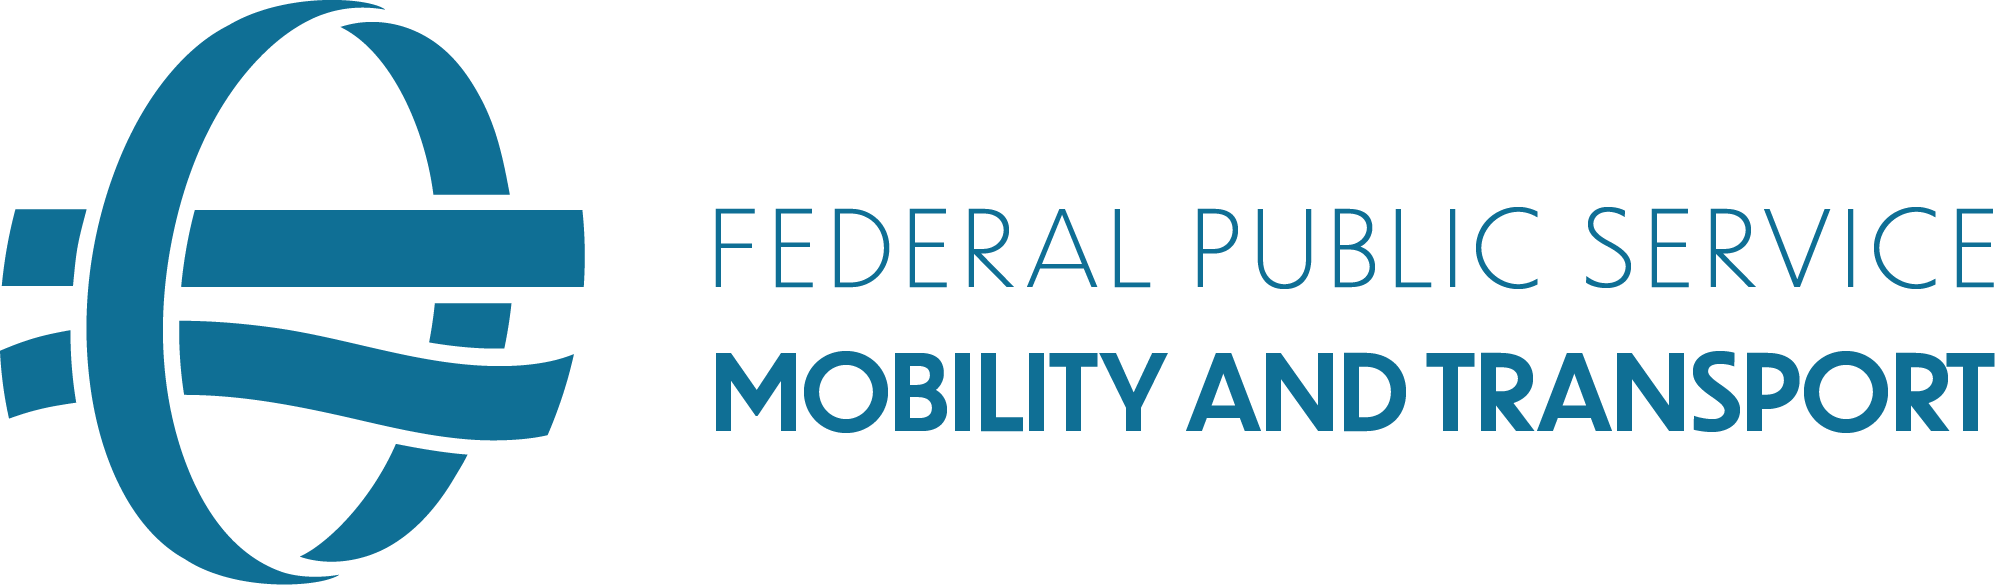 federal-public-service-mobility-and-transport-spf-mobilite-et-transports-fod-mobiliteit-en-vervoer